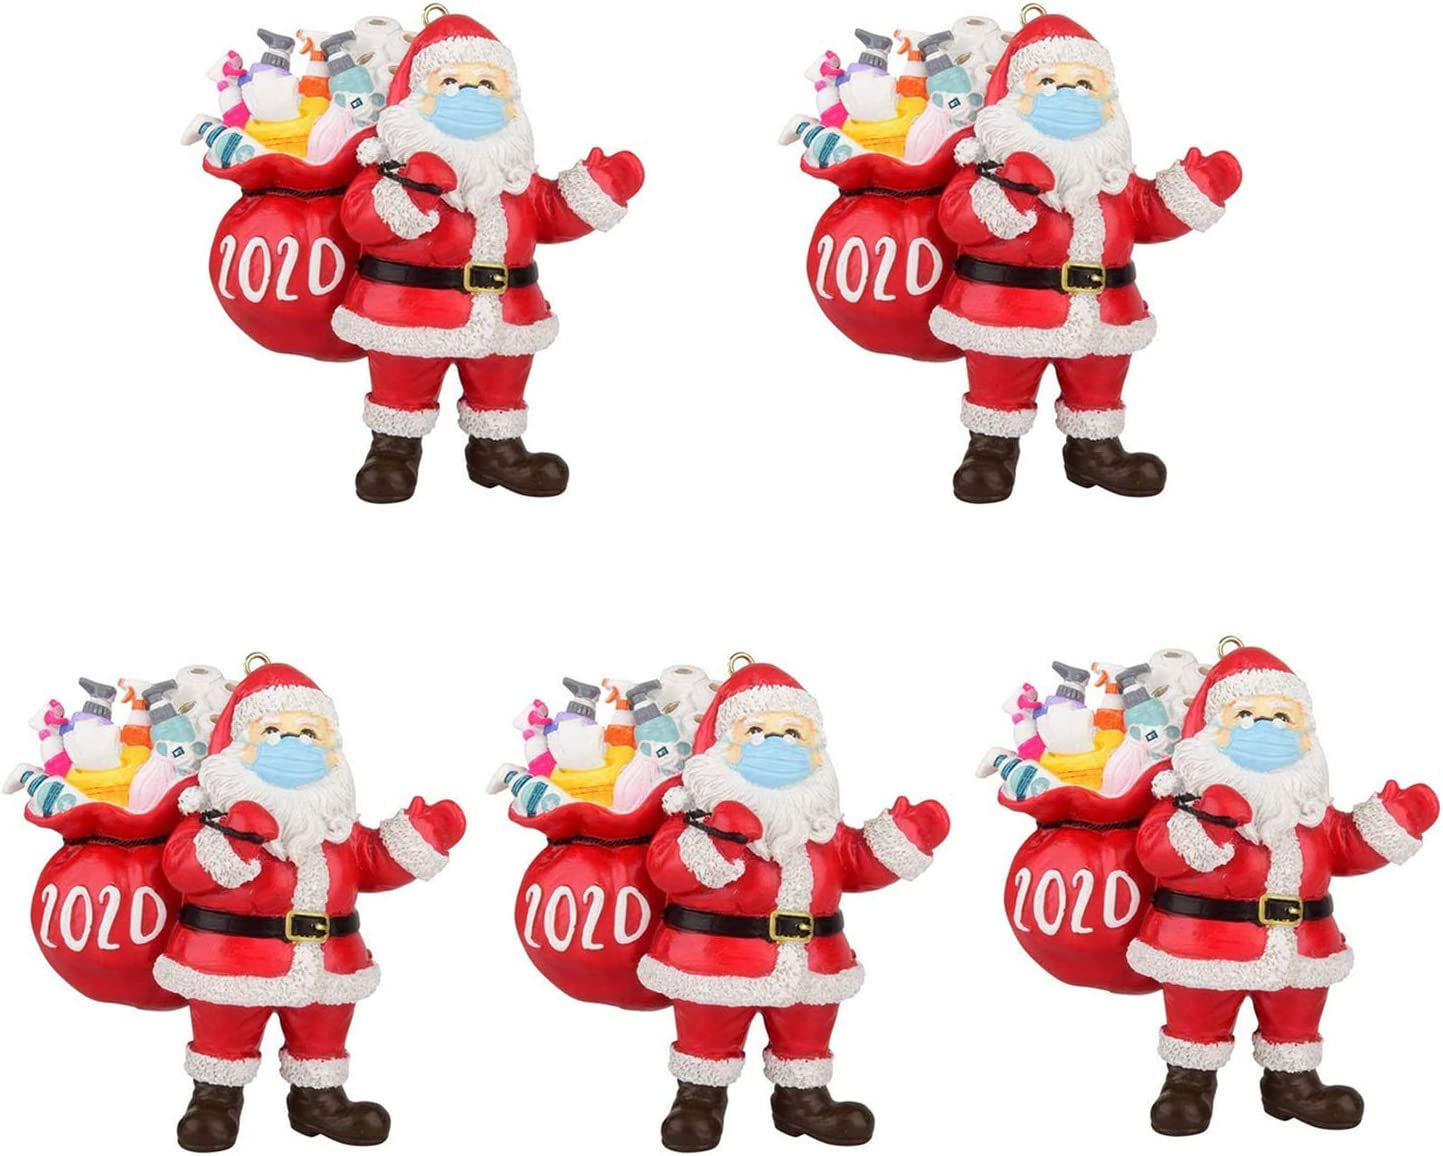 BLAU GRUN 2020 Christmas Ornament,Christmas Tree Decoration Pendant, Santa Claus with Face Cover Tradition Home Decor for Family (5pcs)